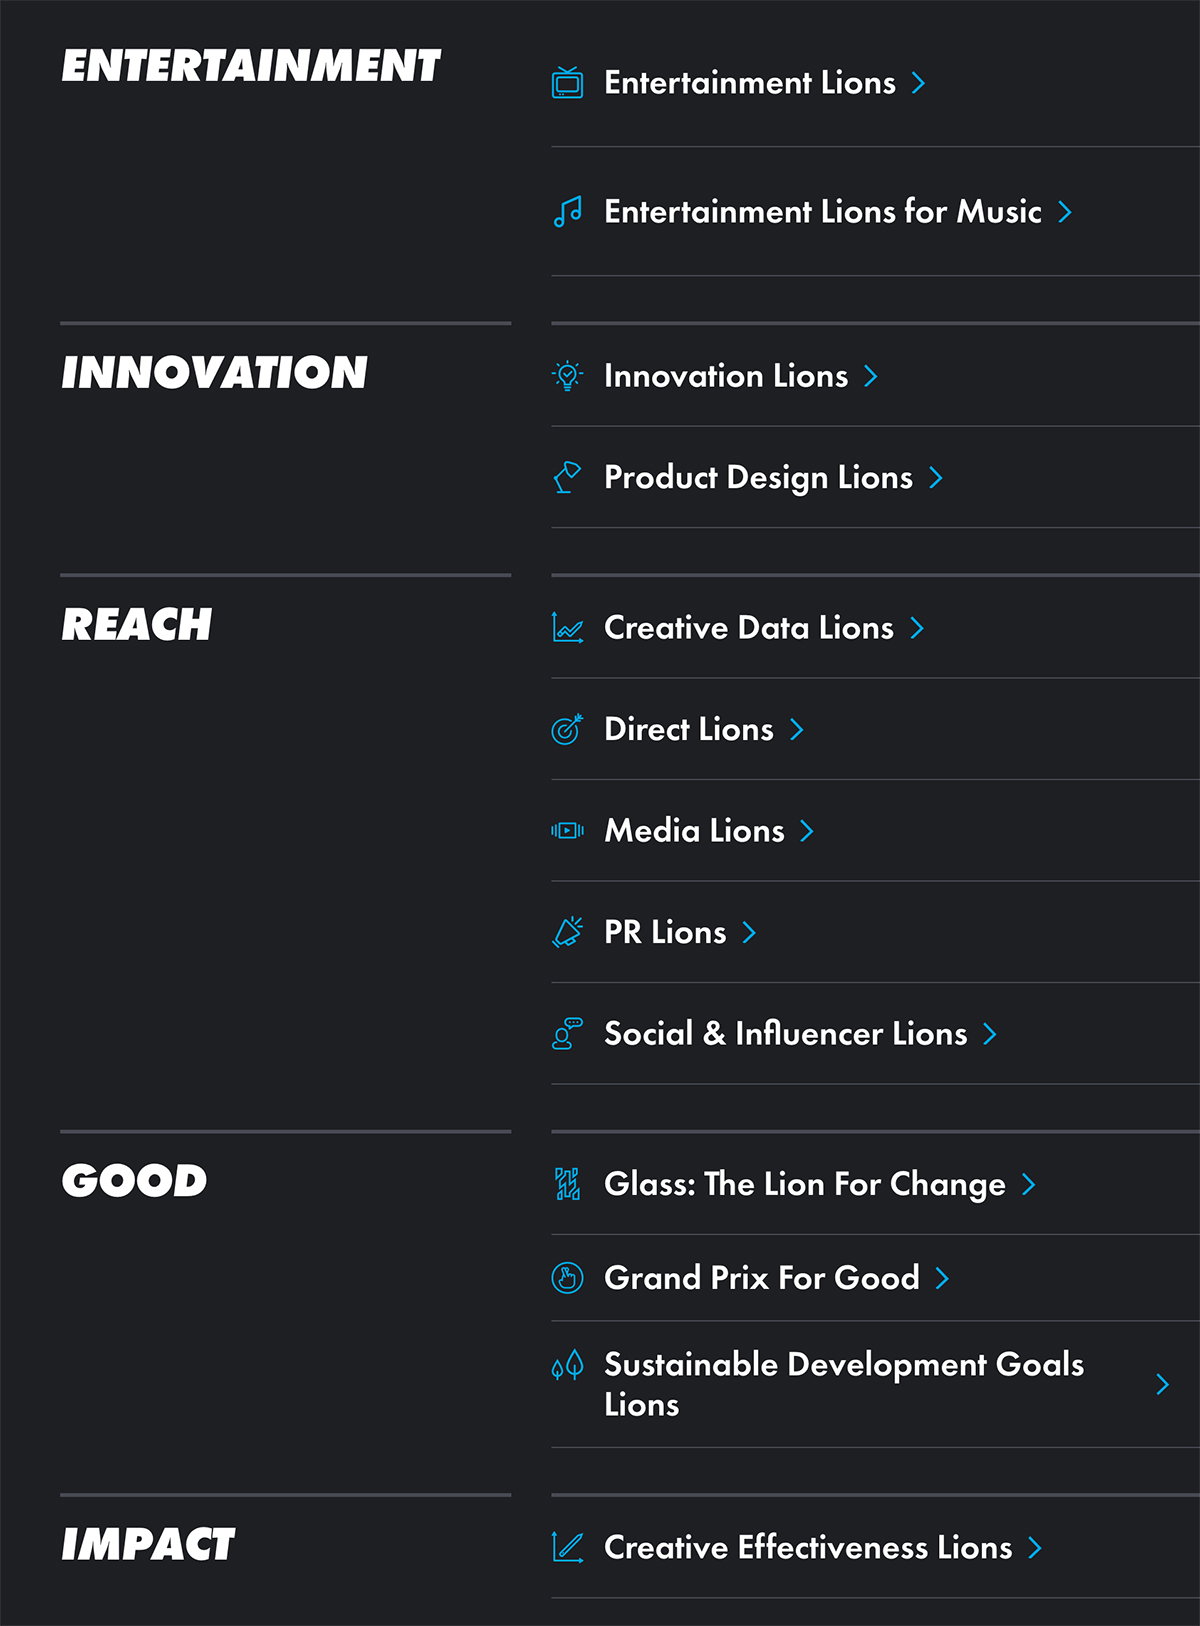 cannes-lions-2018-categories-sub-categories-2